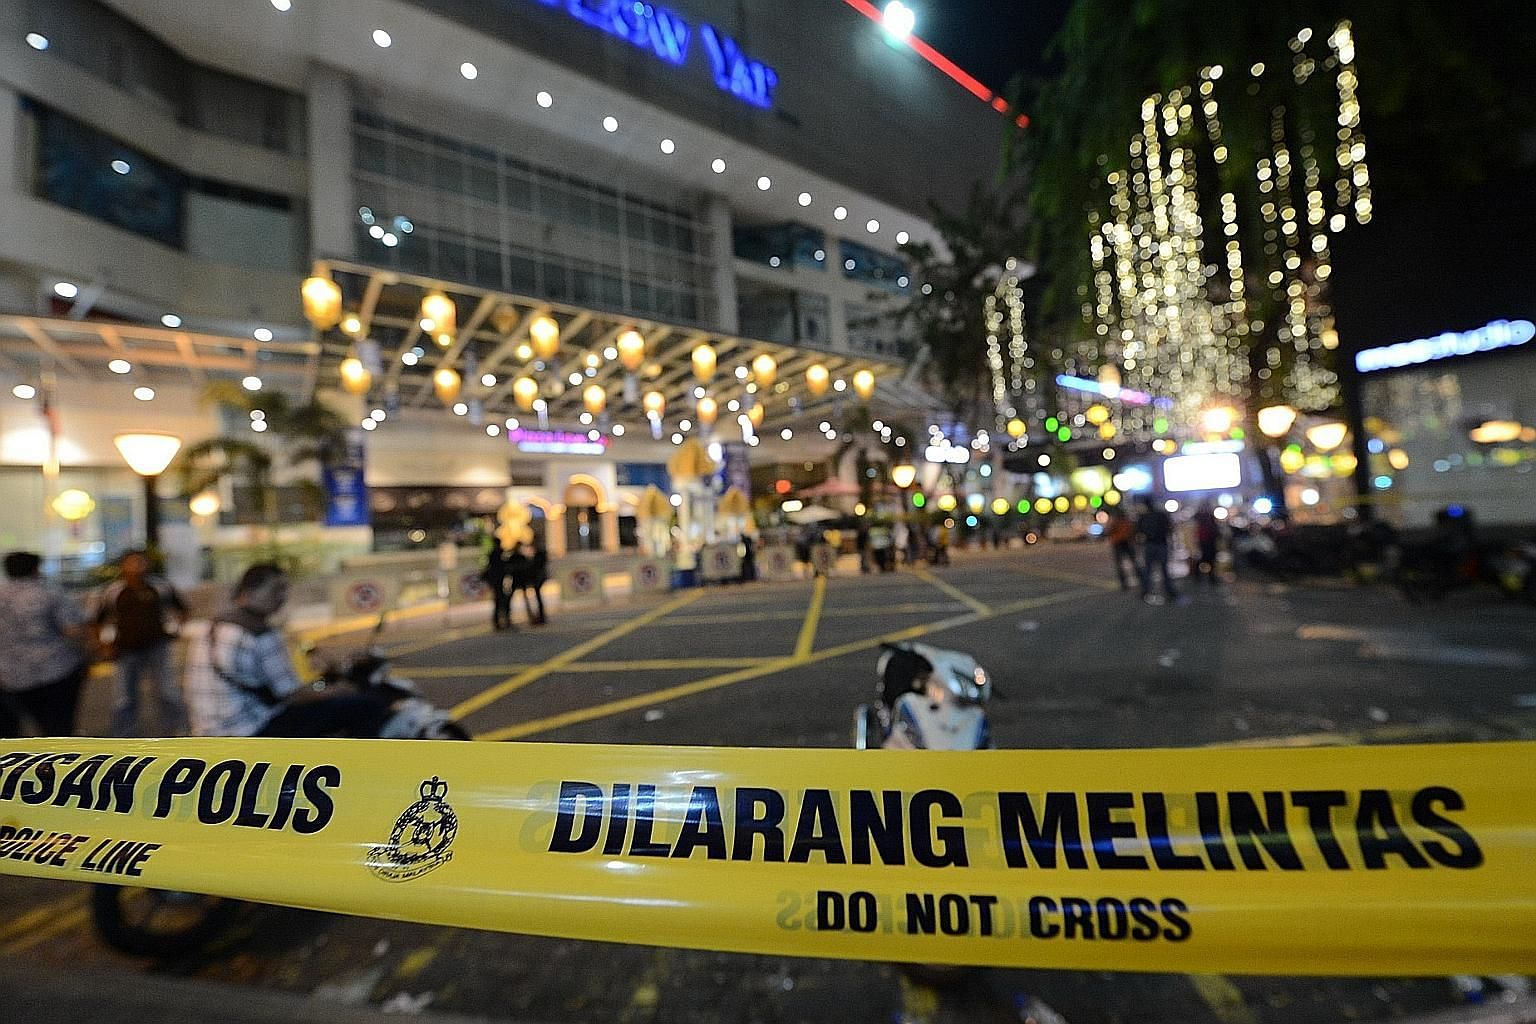 The aftermath of the clash between Chinese and Malays at Low Yat Plaza in Kuala Lumpur last month. If Malaysia is troubled, unstable or divided, Singapore's economy, society and security will be affected.